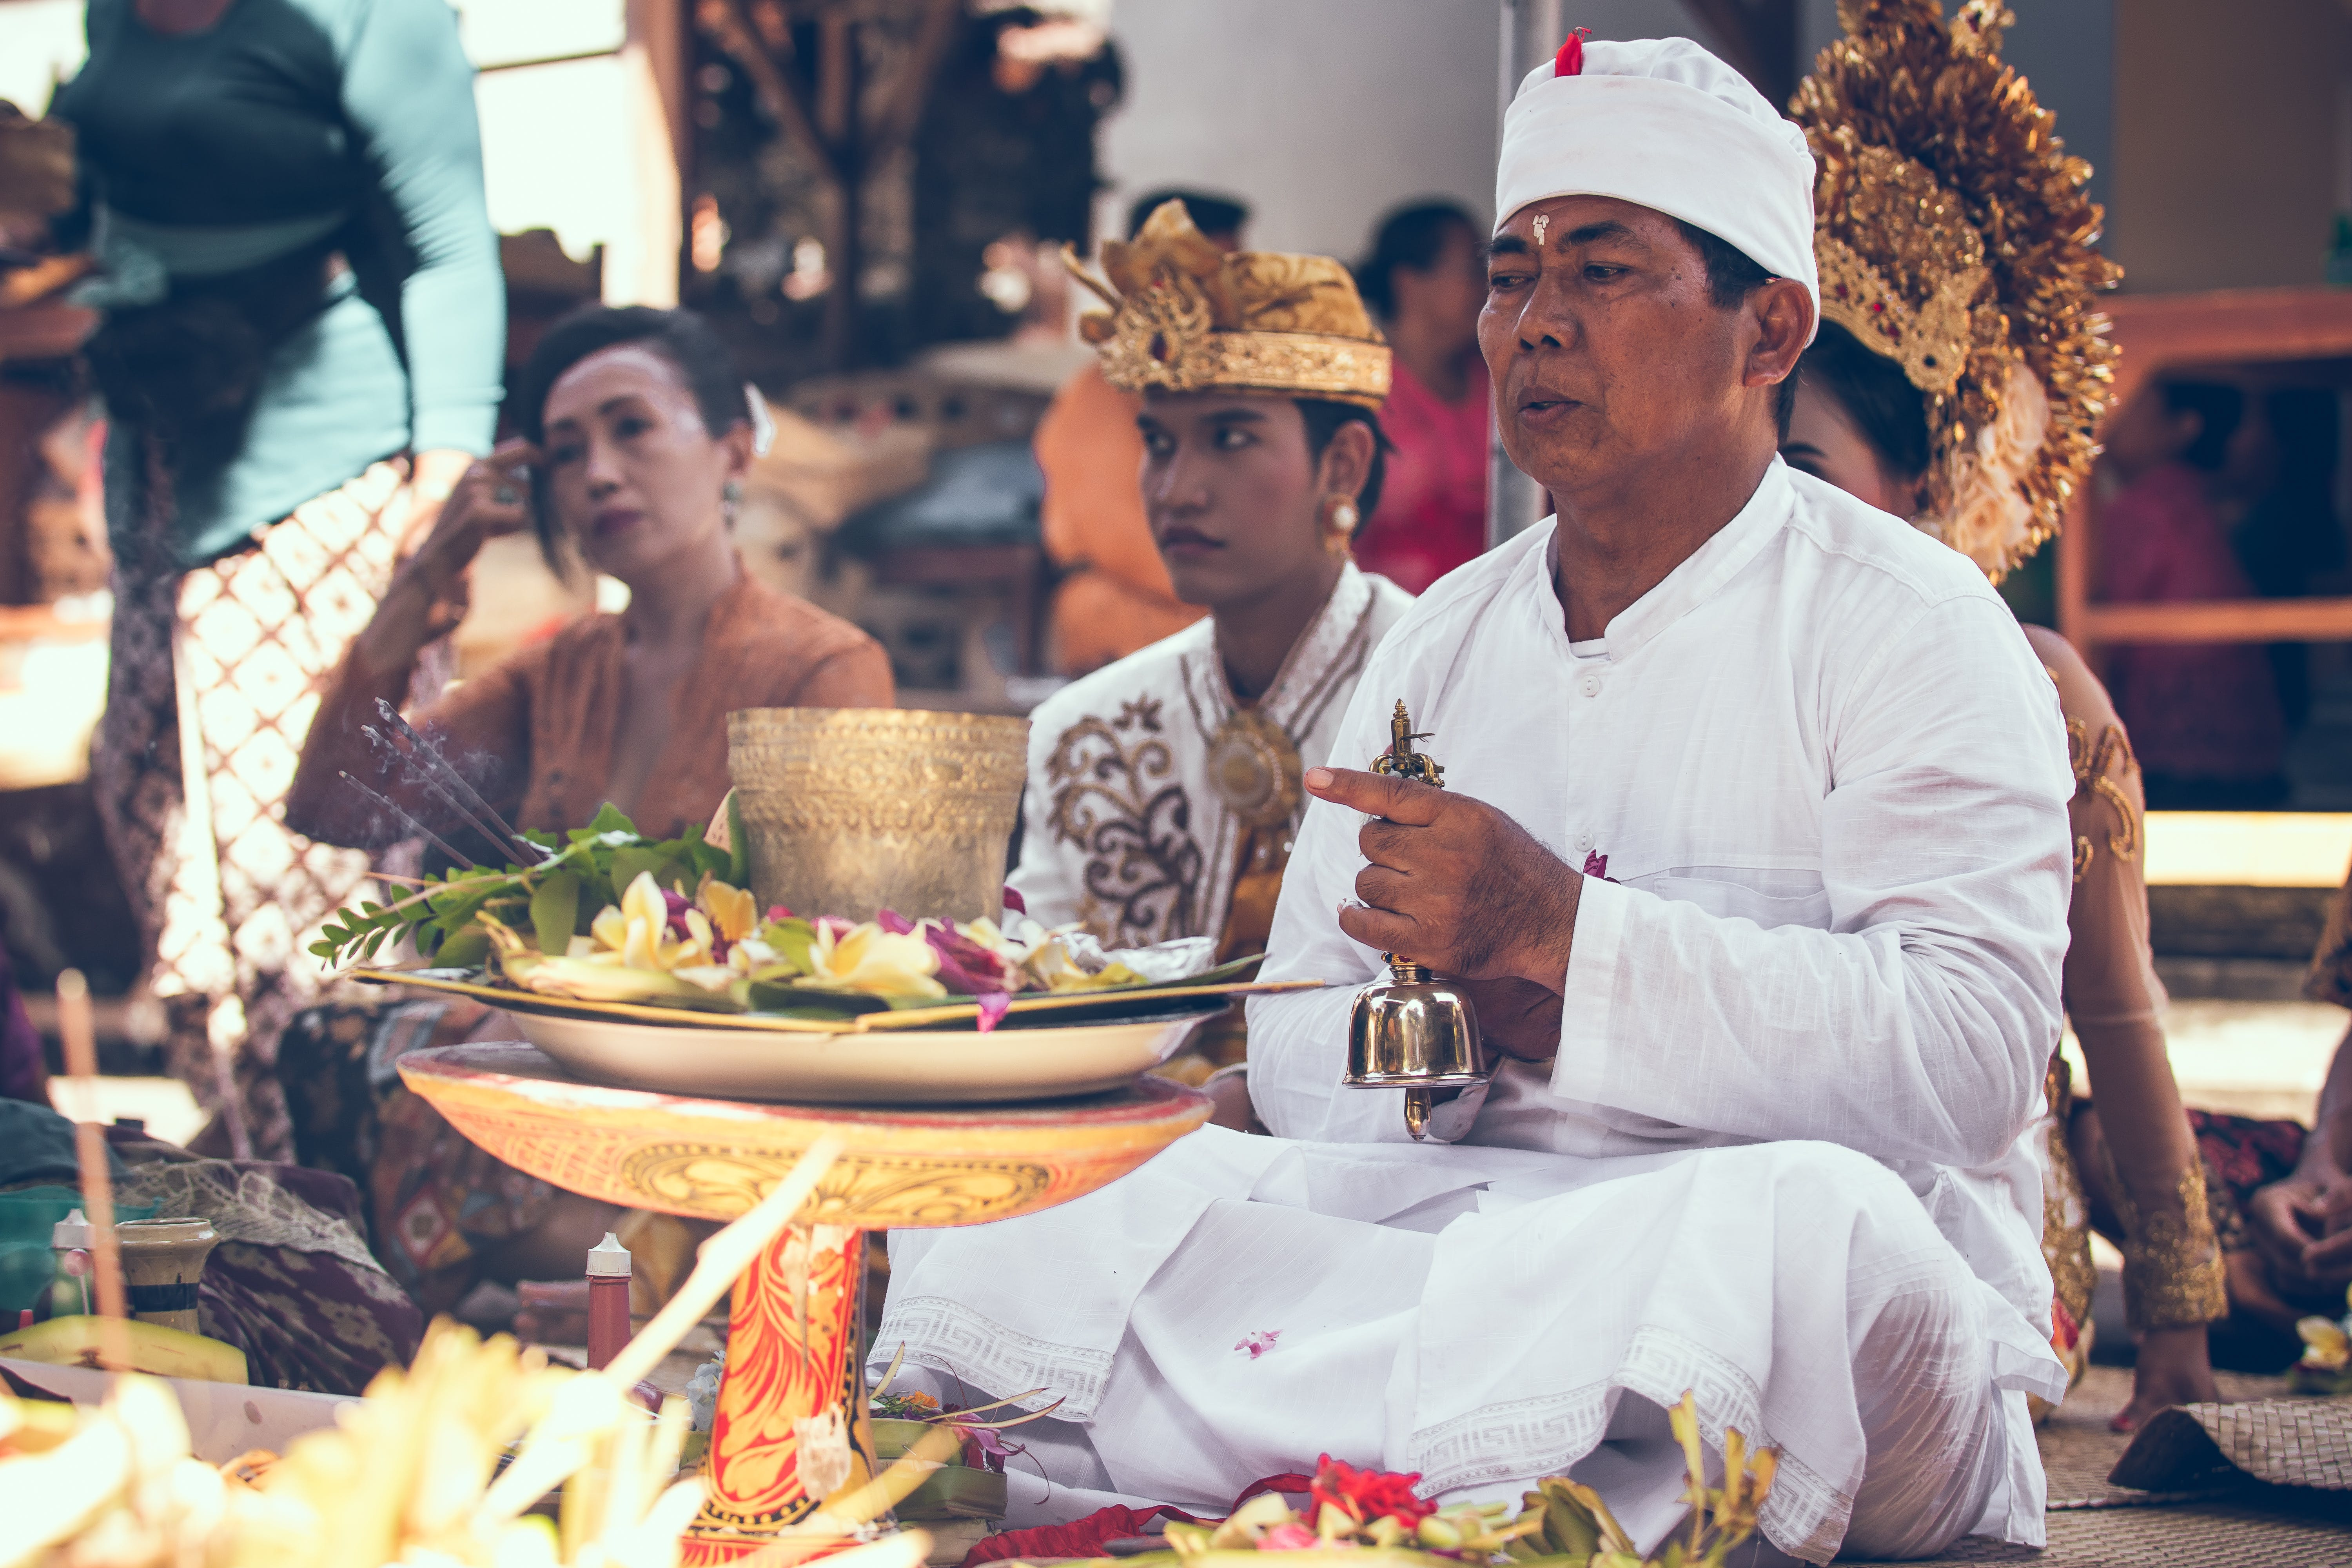 Man Sitting in Front of Woman Near Table Performing Ritual Ceremony